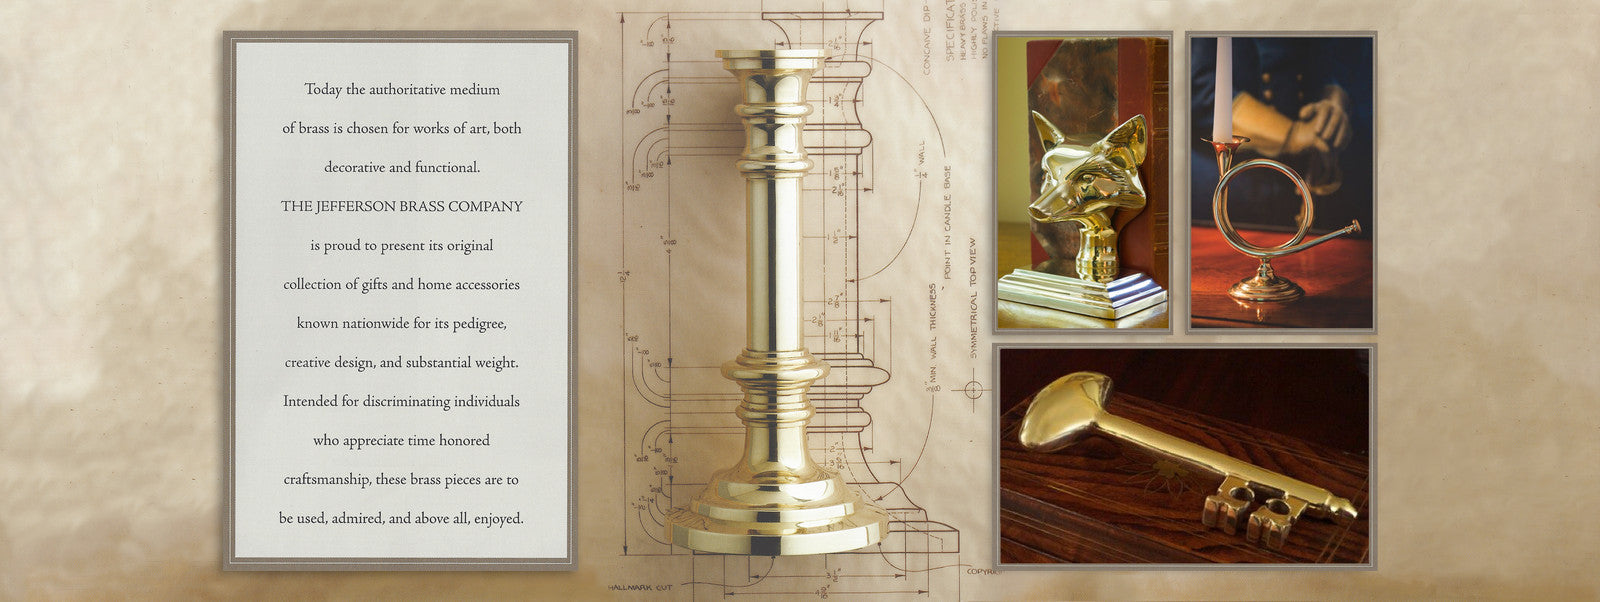 Today, the authoritative medium of brass is chosen for works of art, both decorative and functional. The Jefferson Brass Company is proud to present its original collection of gifts and home accessories known nationwide for its pedigree, creative design, and substantial weight. Intended for discriminating individuals who appreciate time-honored craftsmanship, these brass pieces are to be used, admired, and above all, enjoyed. Brass Gifts & Brass Home Decor by Jefferson Brass Company  Hand crafted brass home accessories, brass door knockers, brass candlesticks, brass fireplace tools, and brass religious gifts.